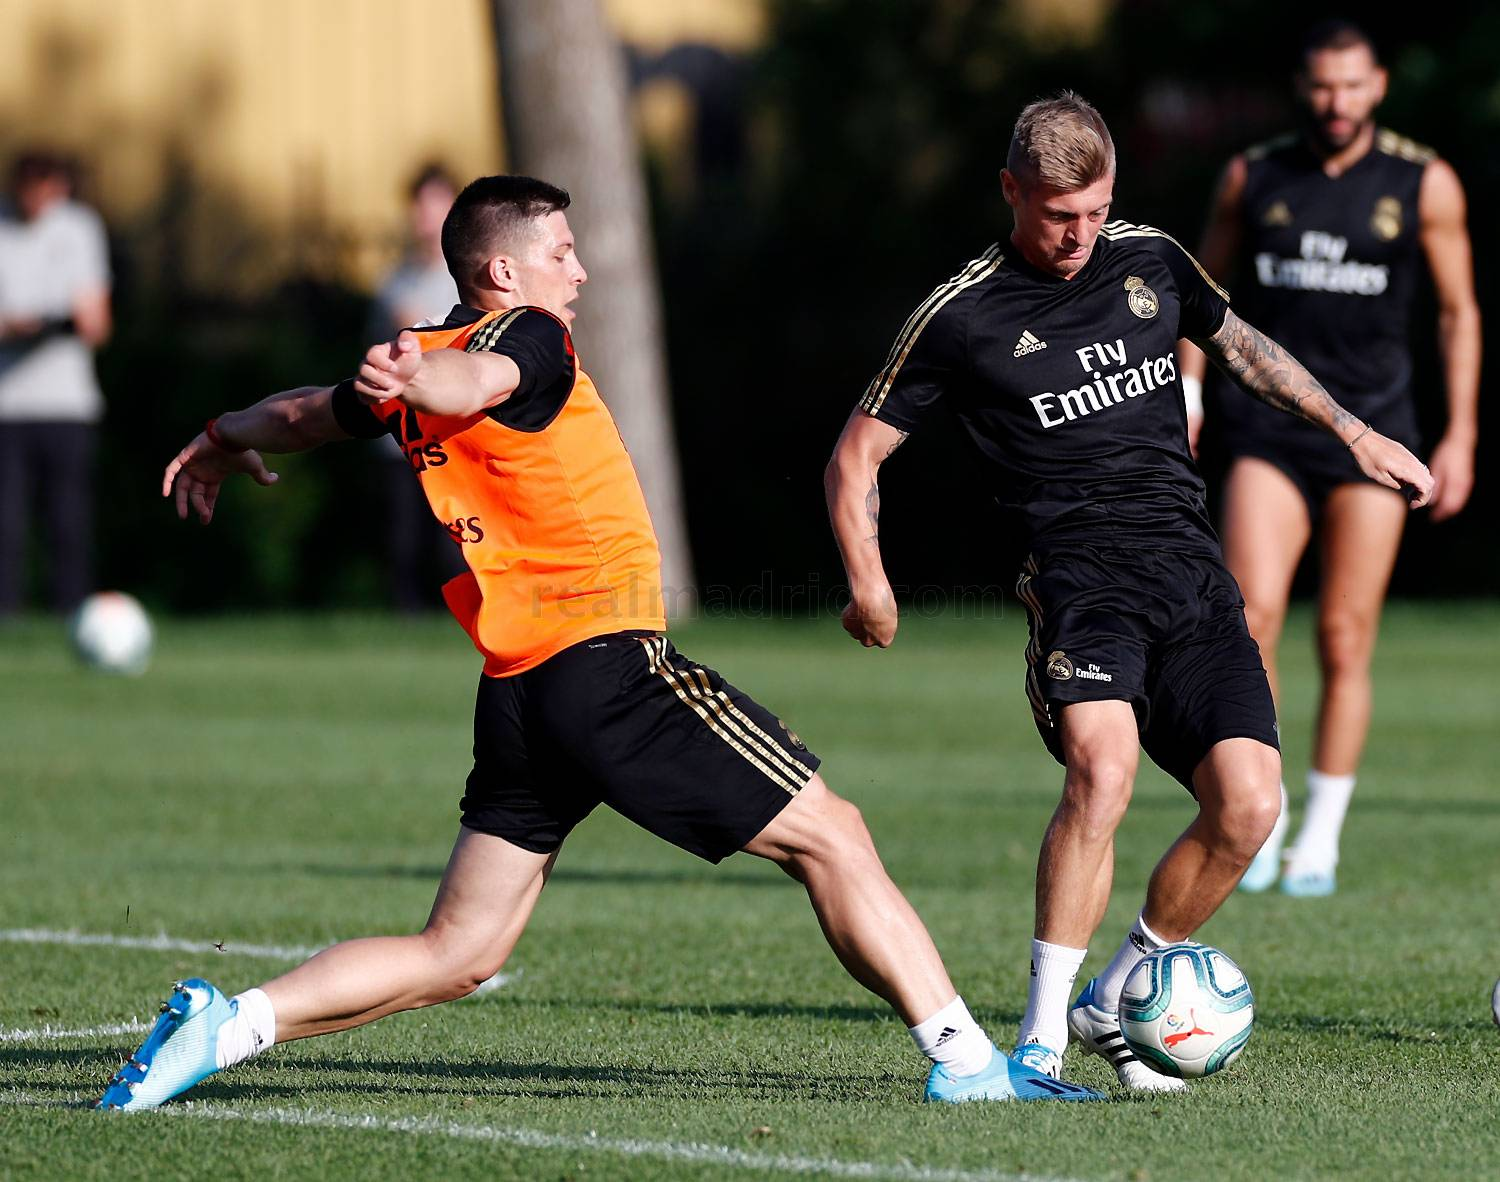 Real Madrid - Entrenamiento del Real Madrid en Montreal - 15-07-2019